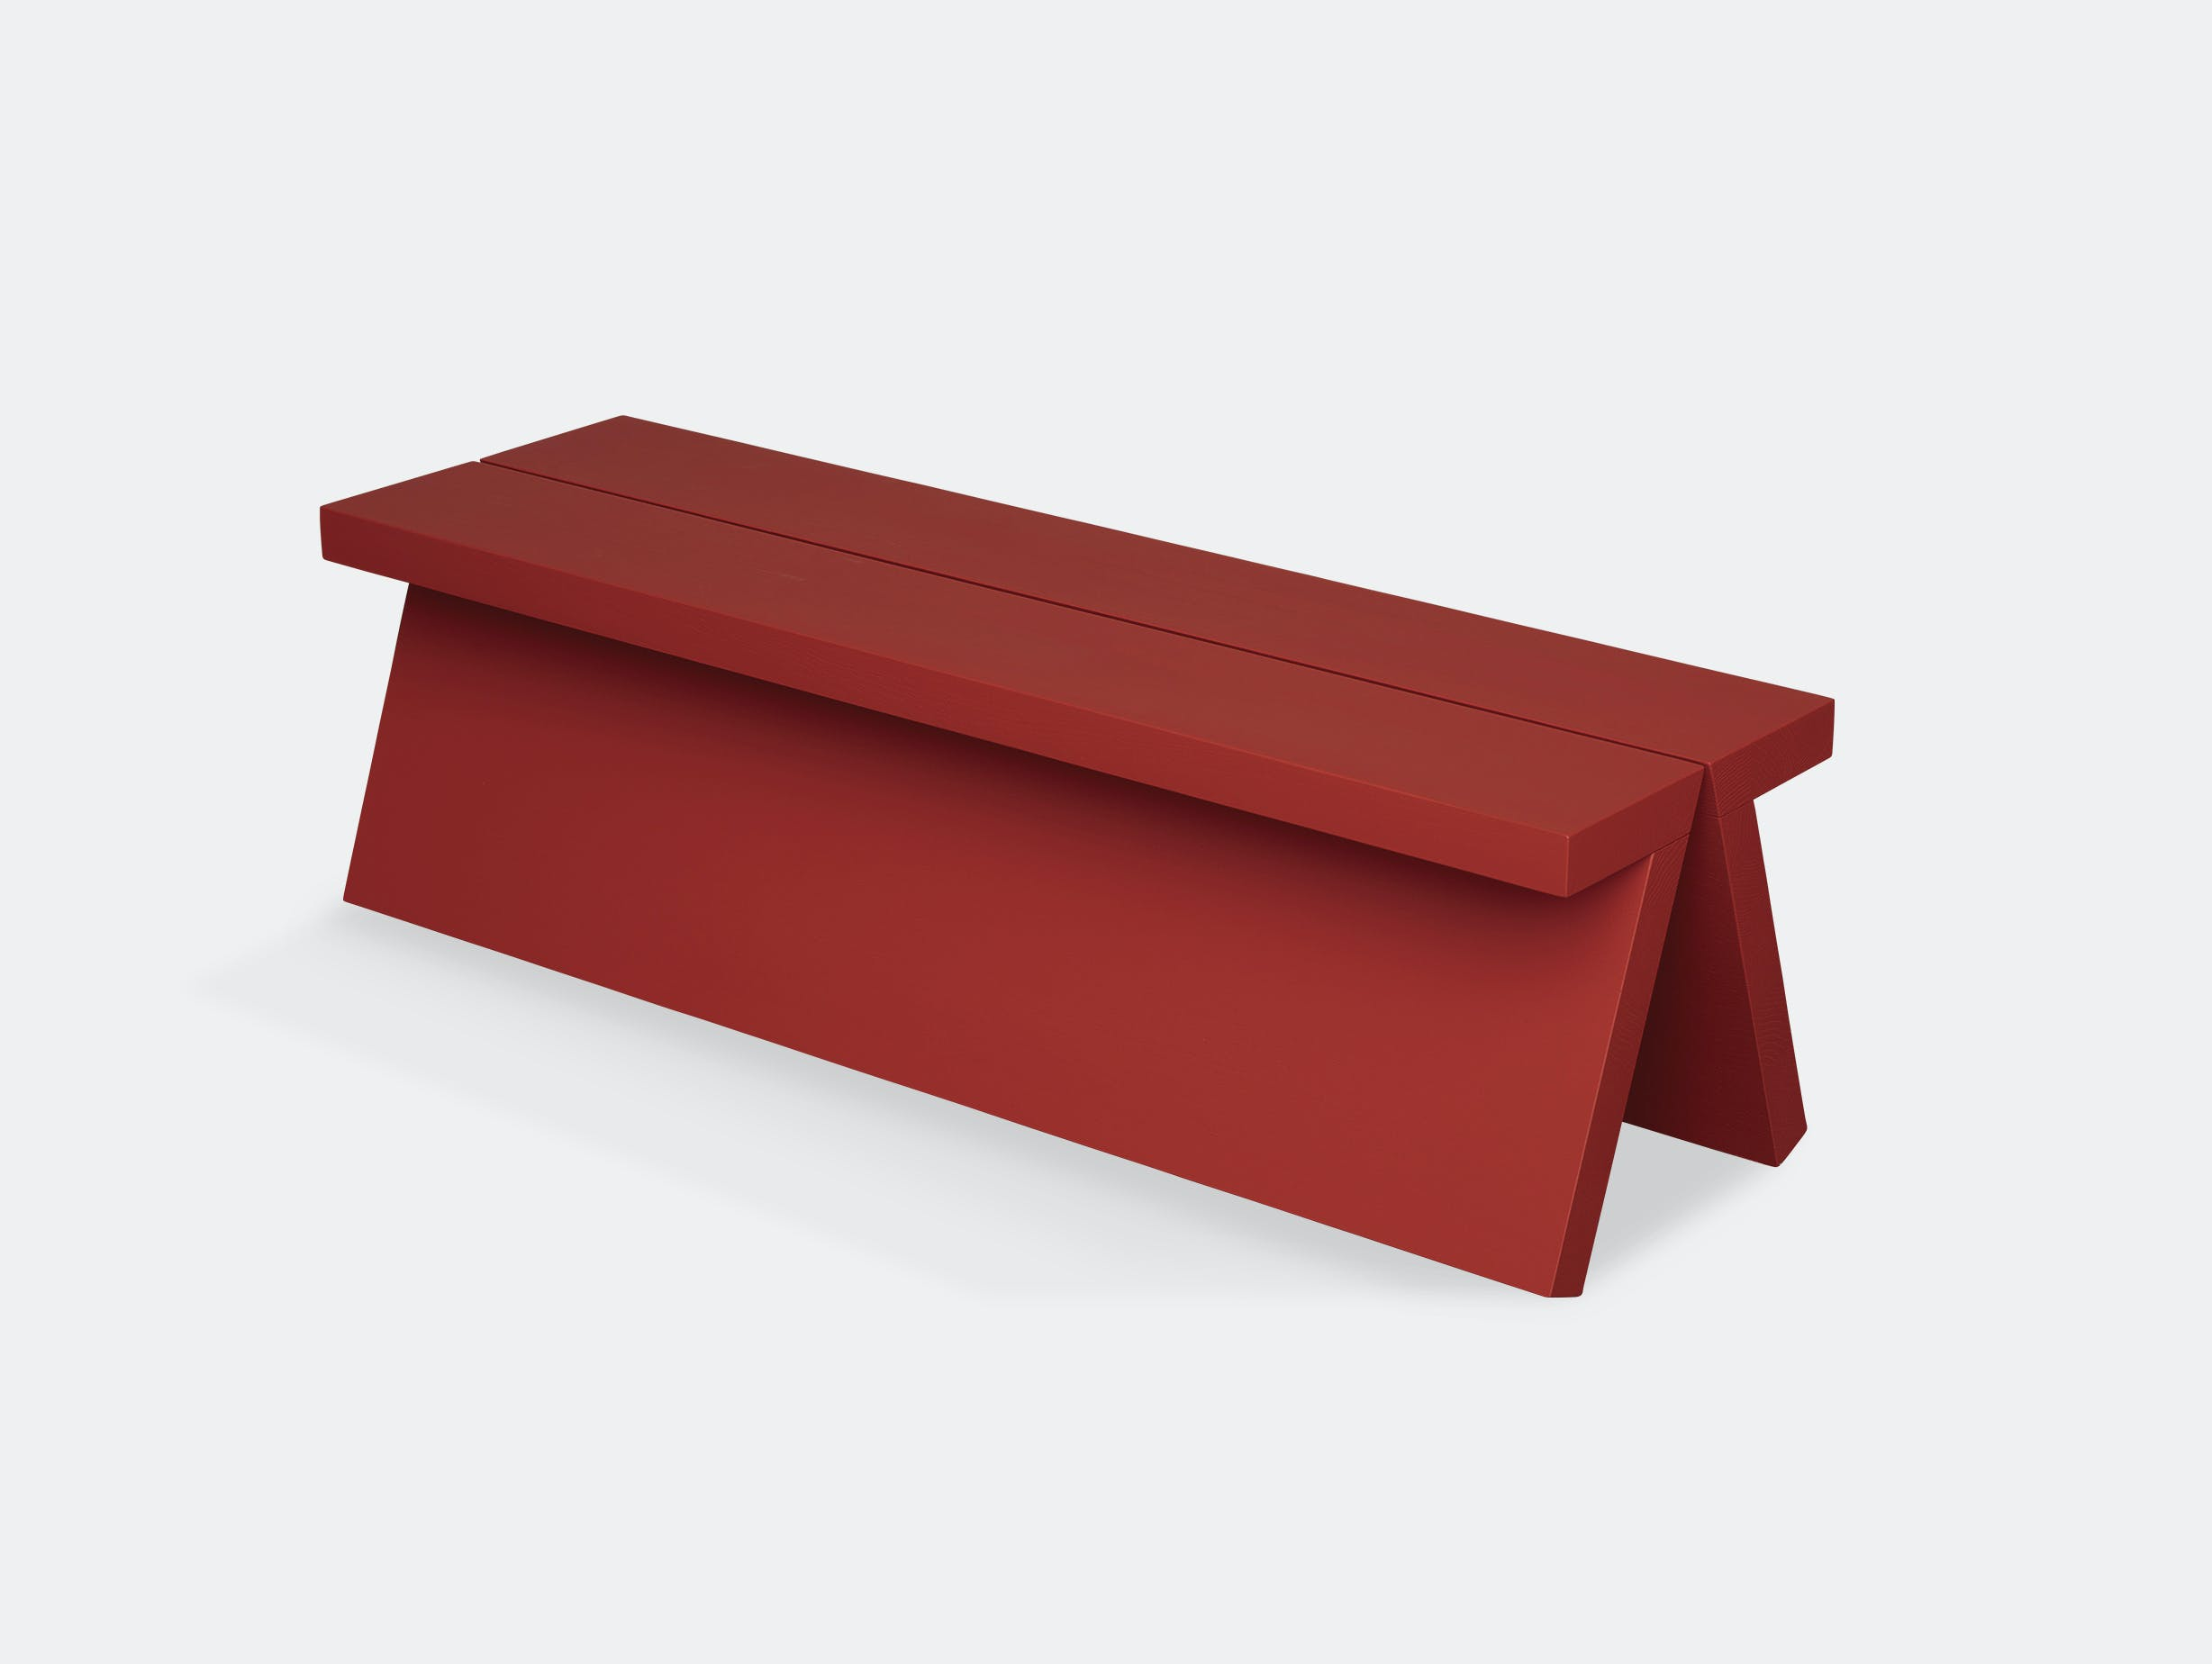 Fogia supersolid object 3 red bench